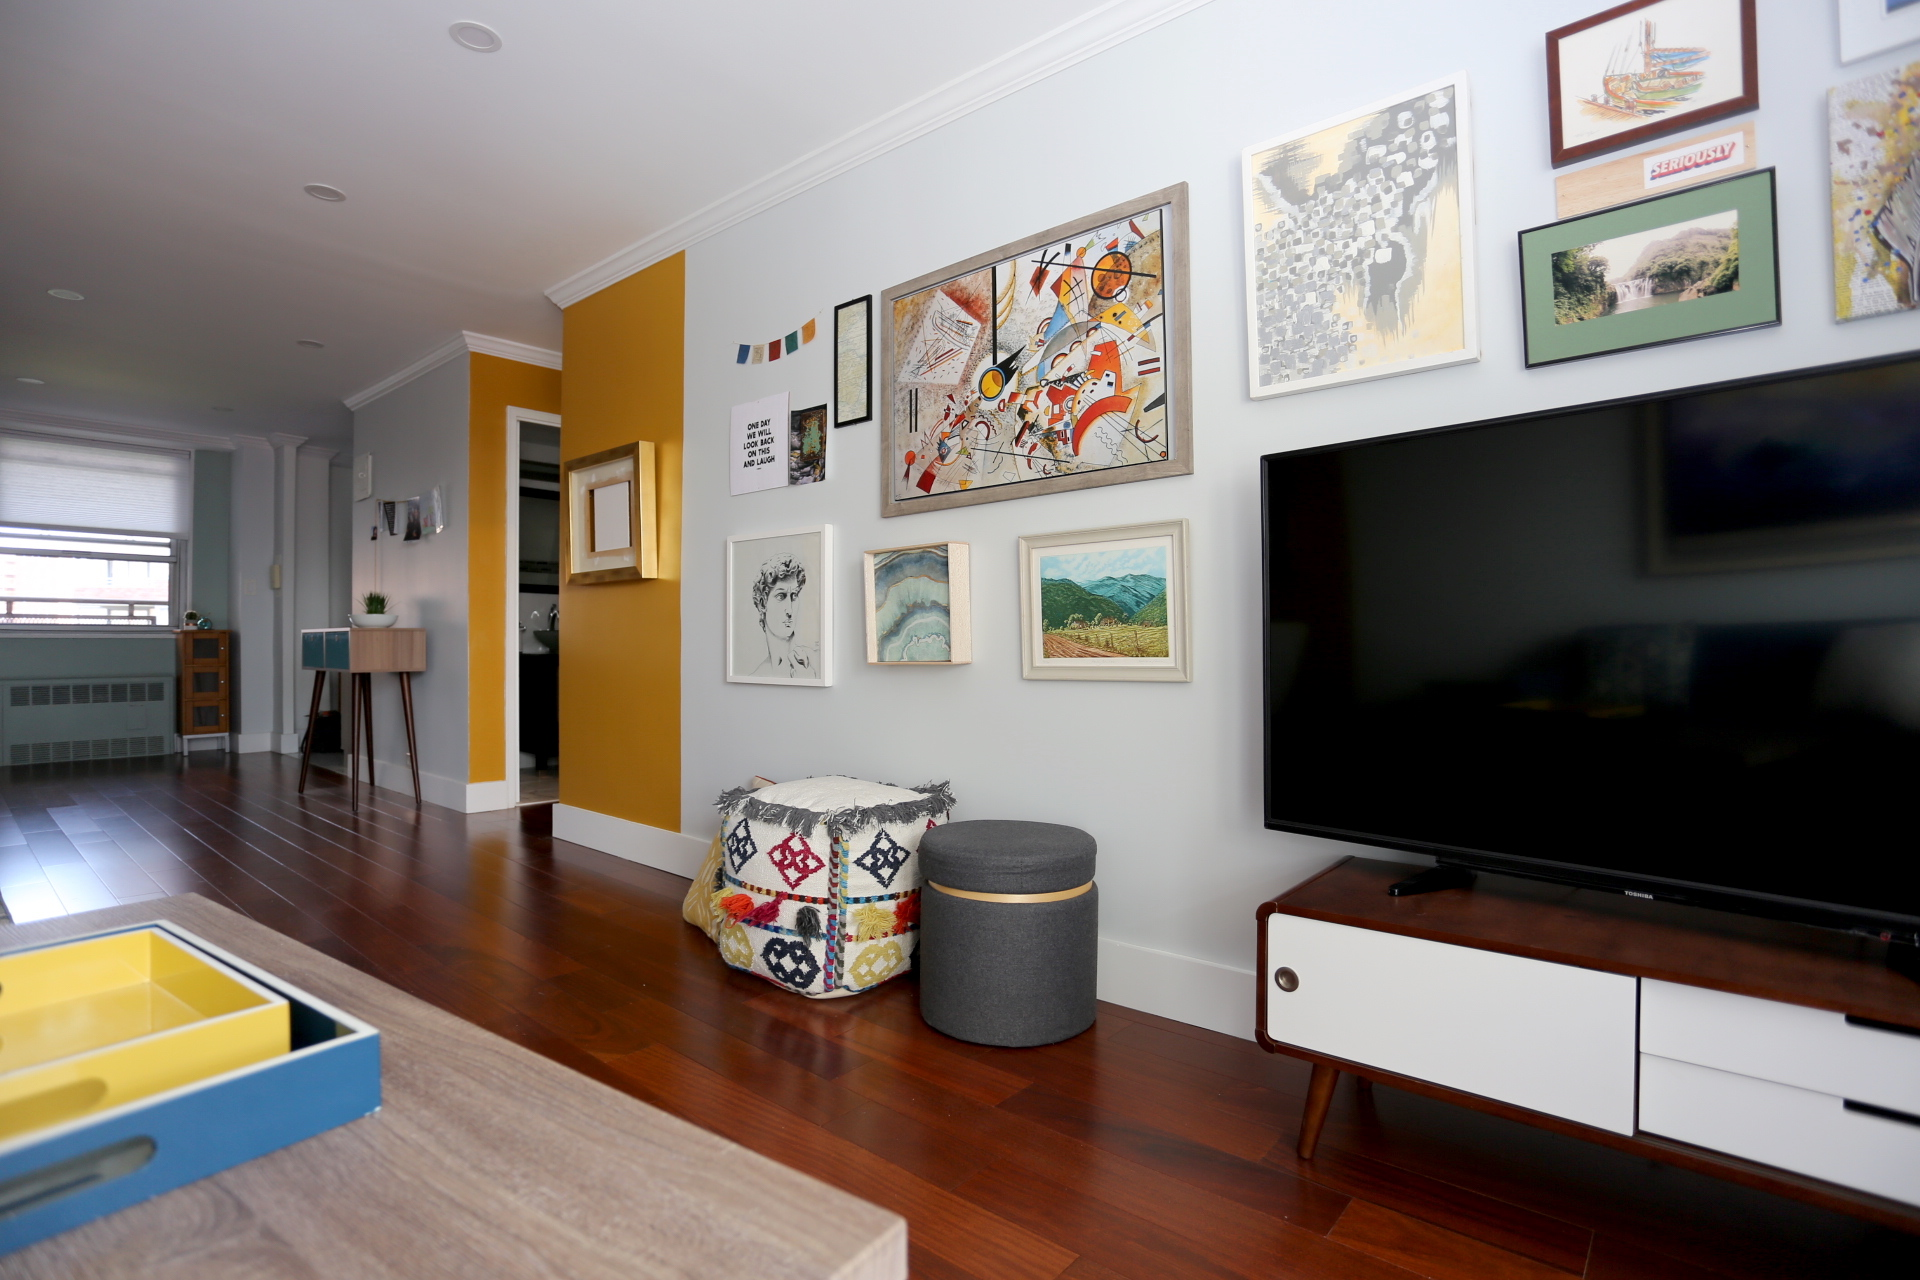 Apartment Gallery Wall Design.JPG